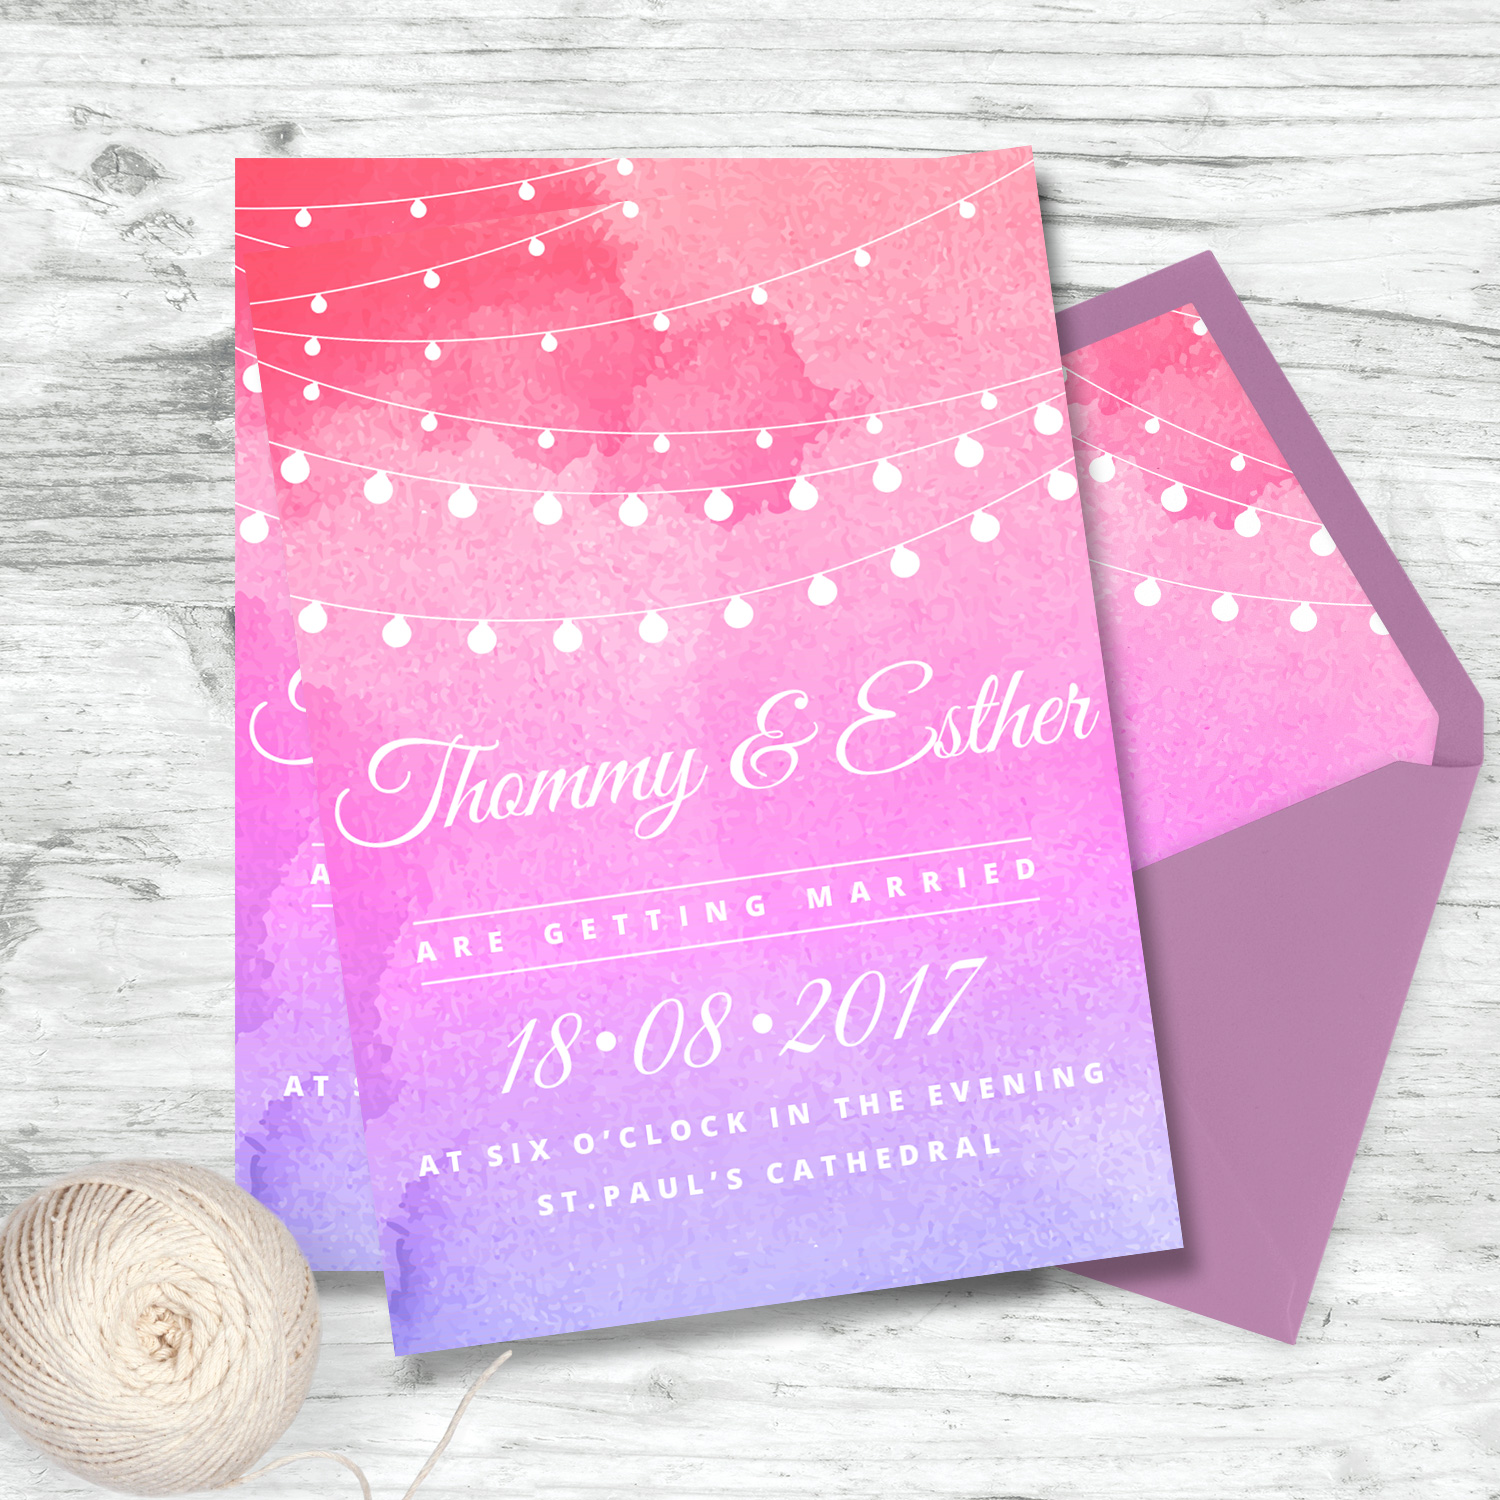 bunting and watercolour wedding invite stationery mass booklets